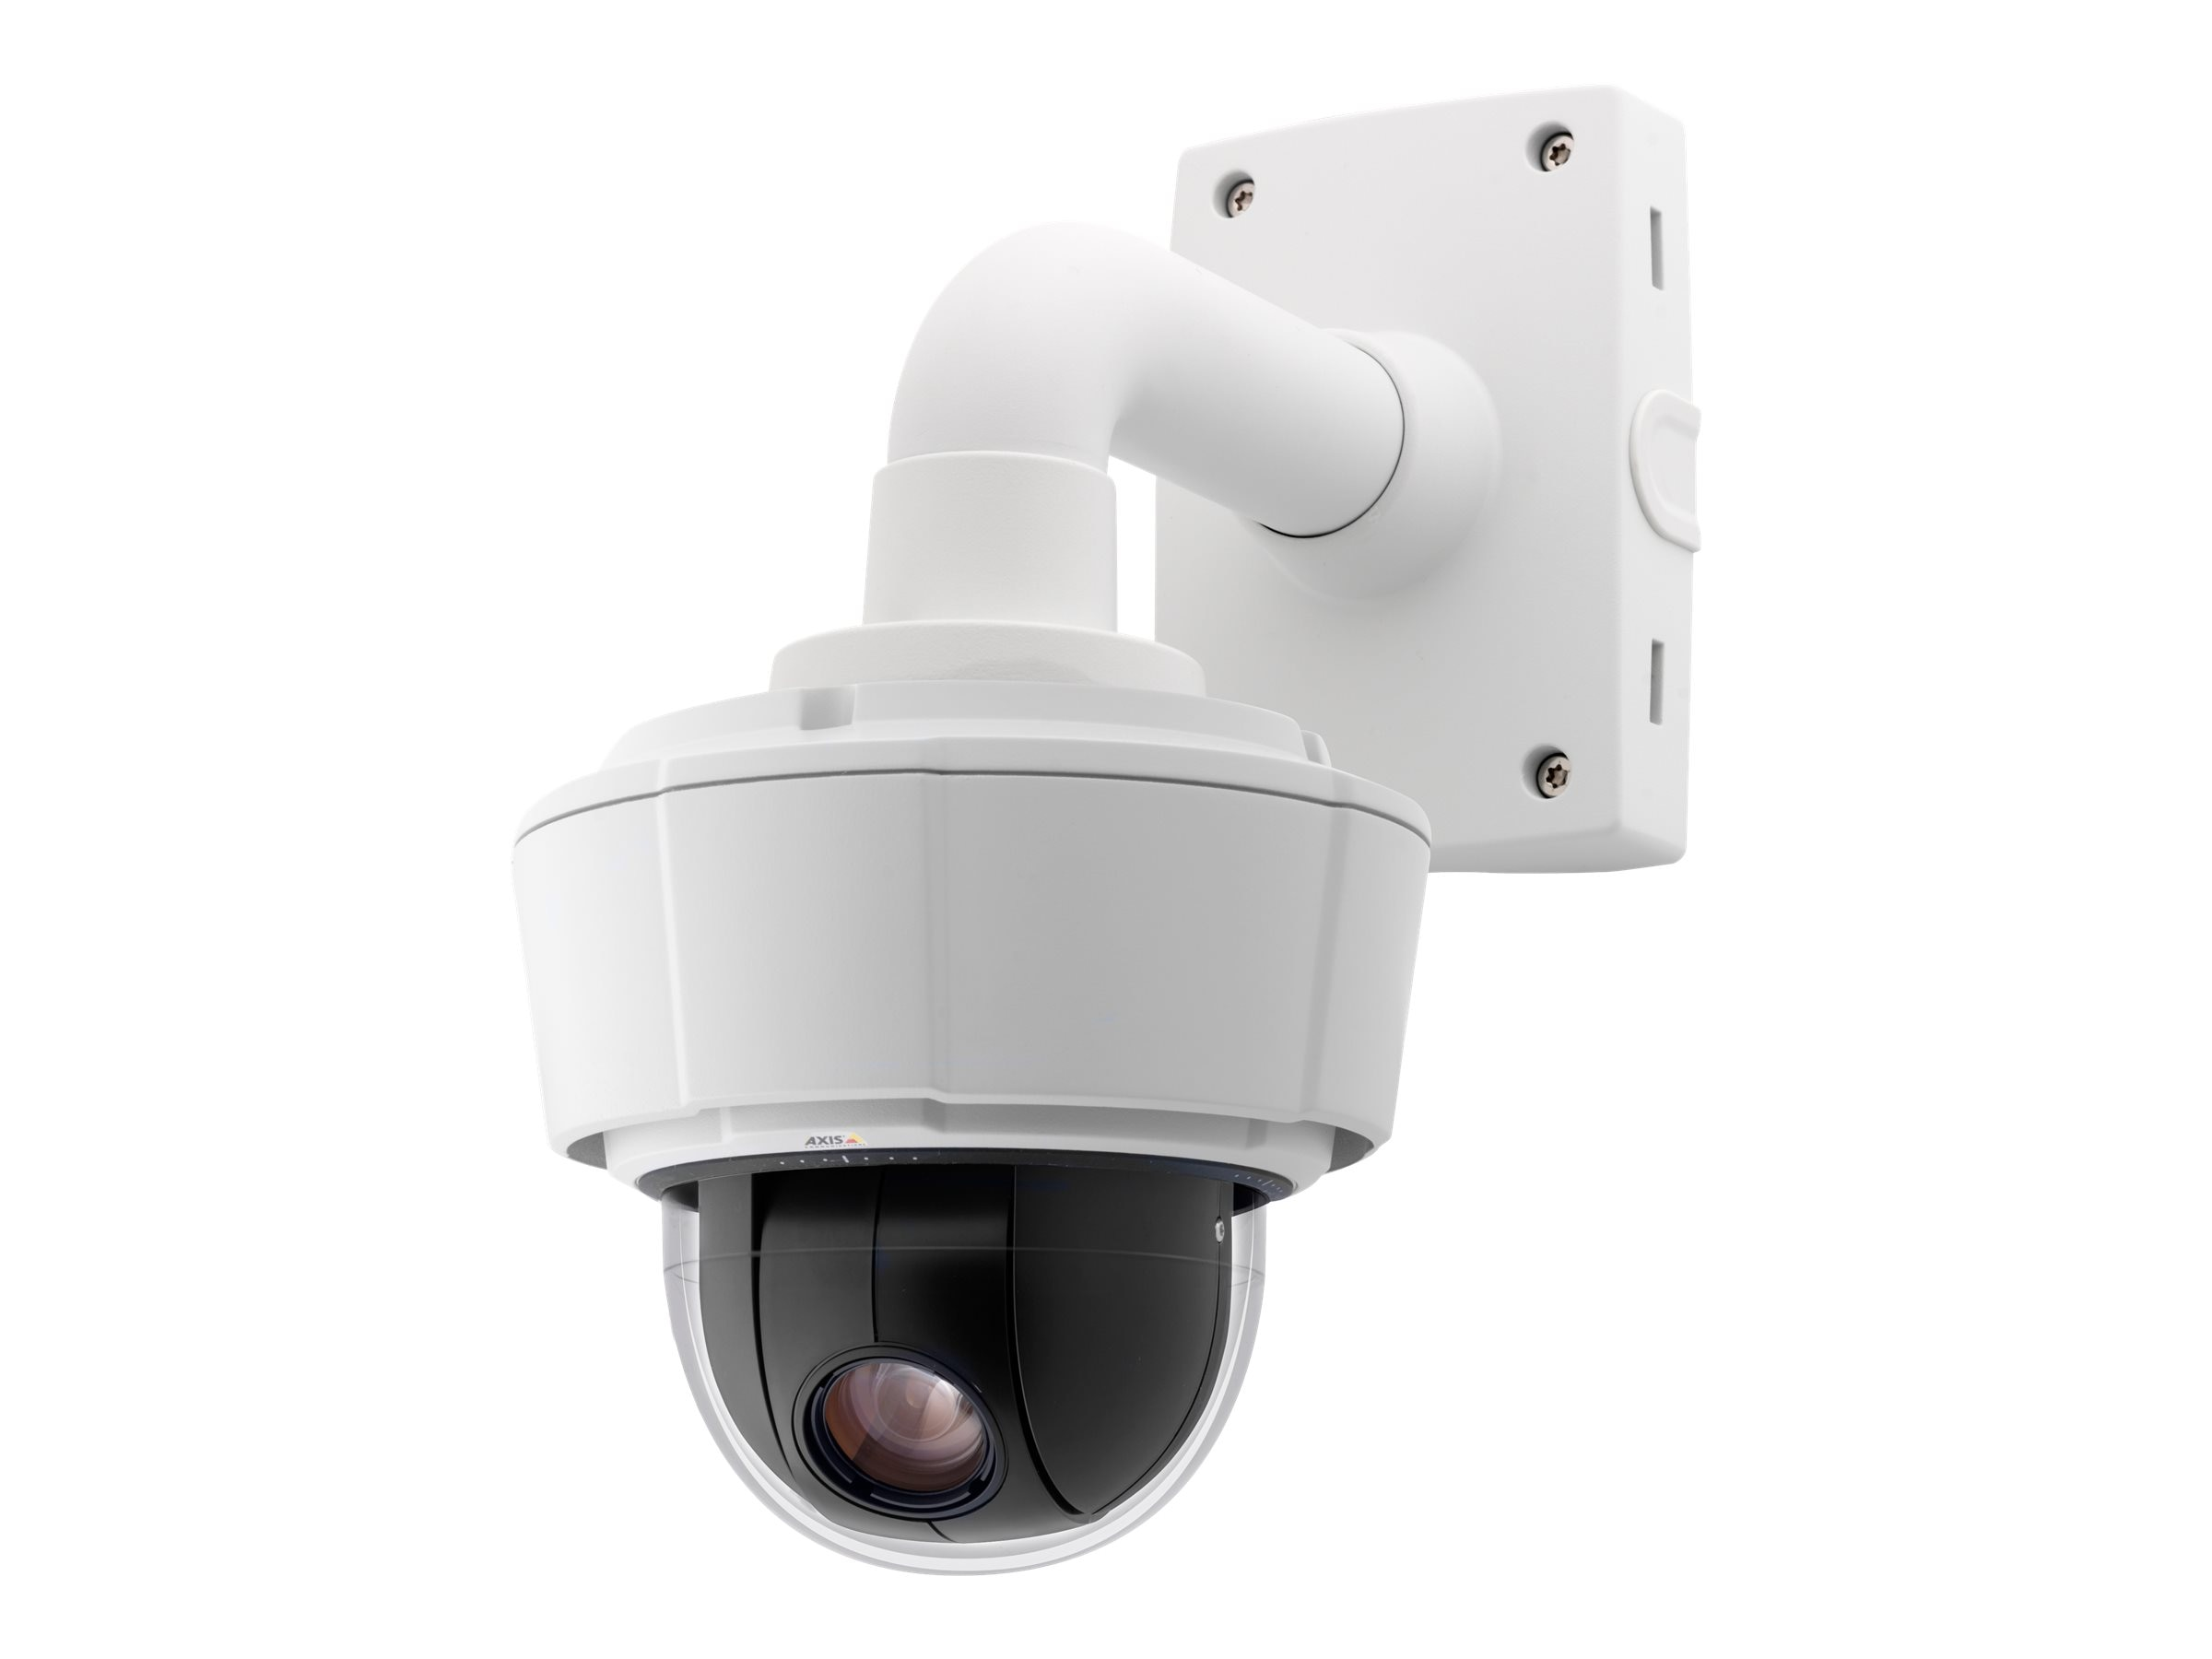 Axis P5534-E PTZ Dome Network Camera, 0316-004, 12078139, Cameras - Security